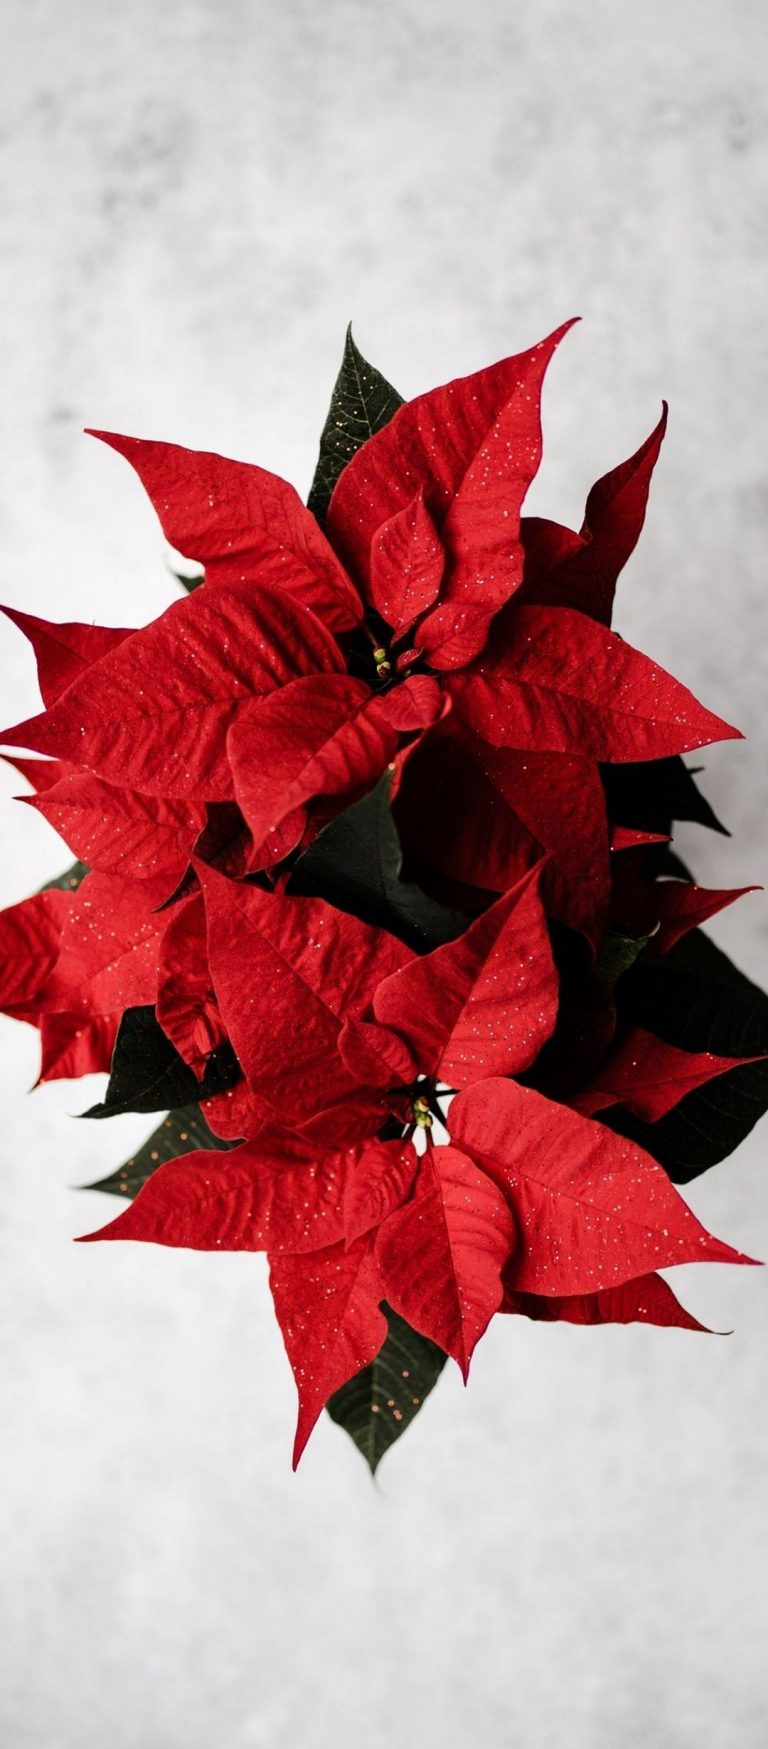 Poinsettia Red Flower 1080x2460 768x1749